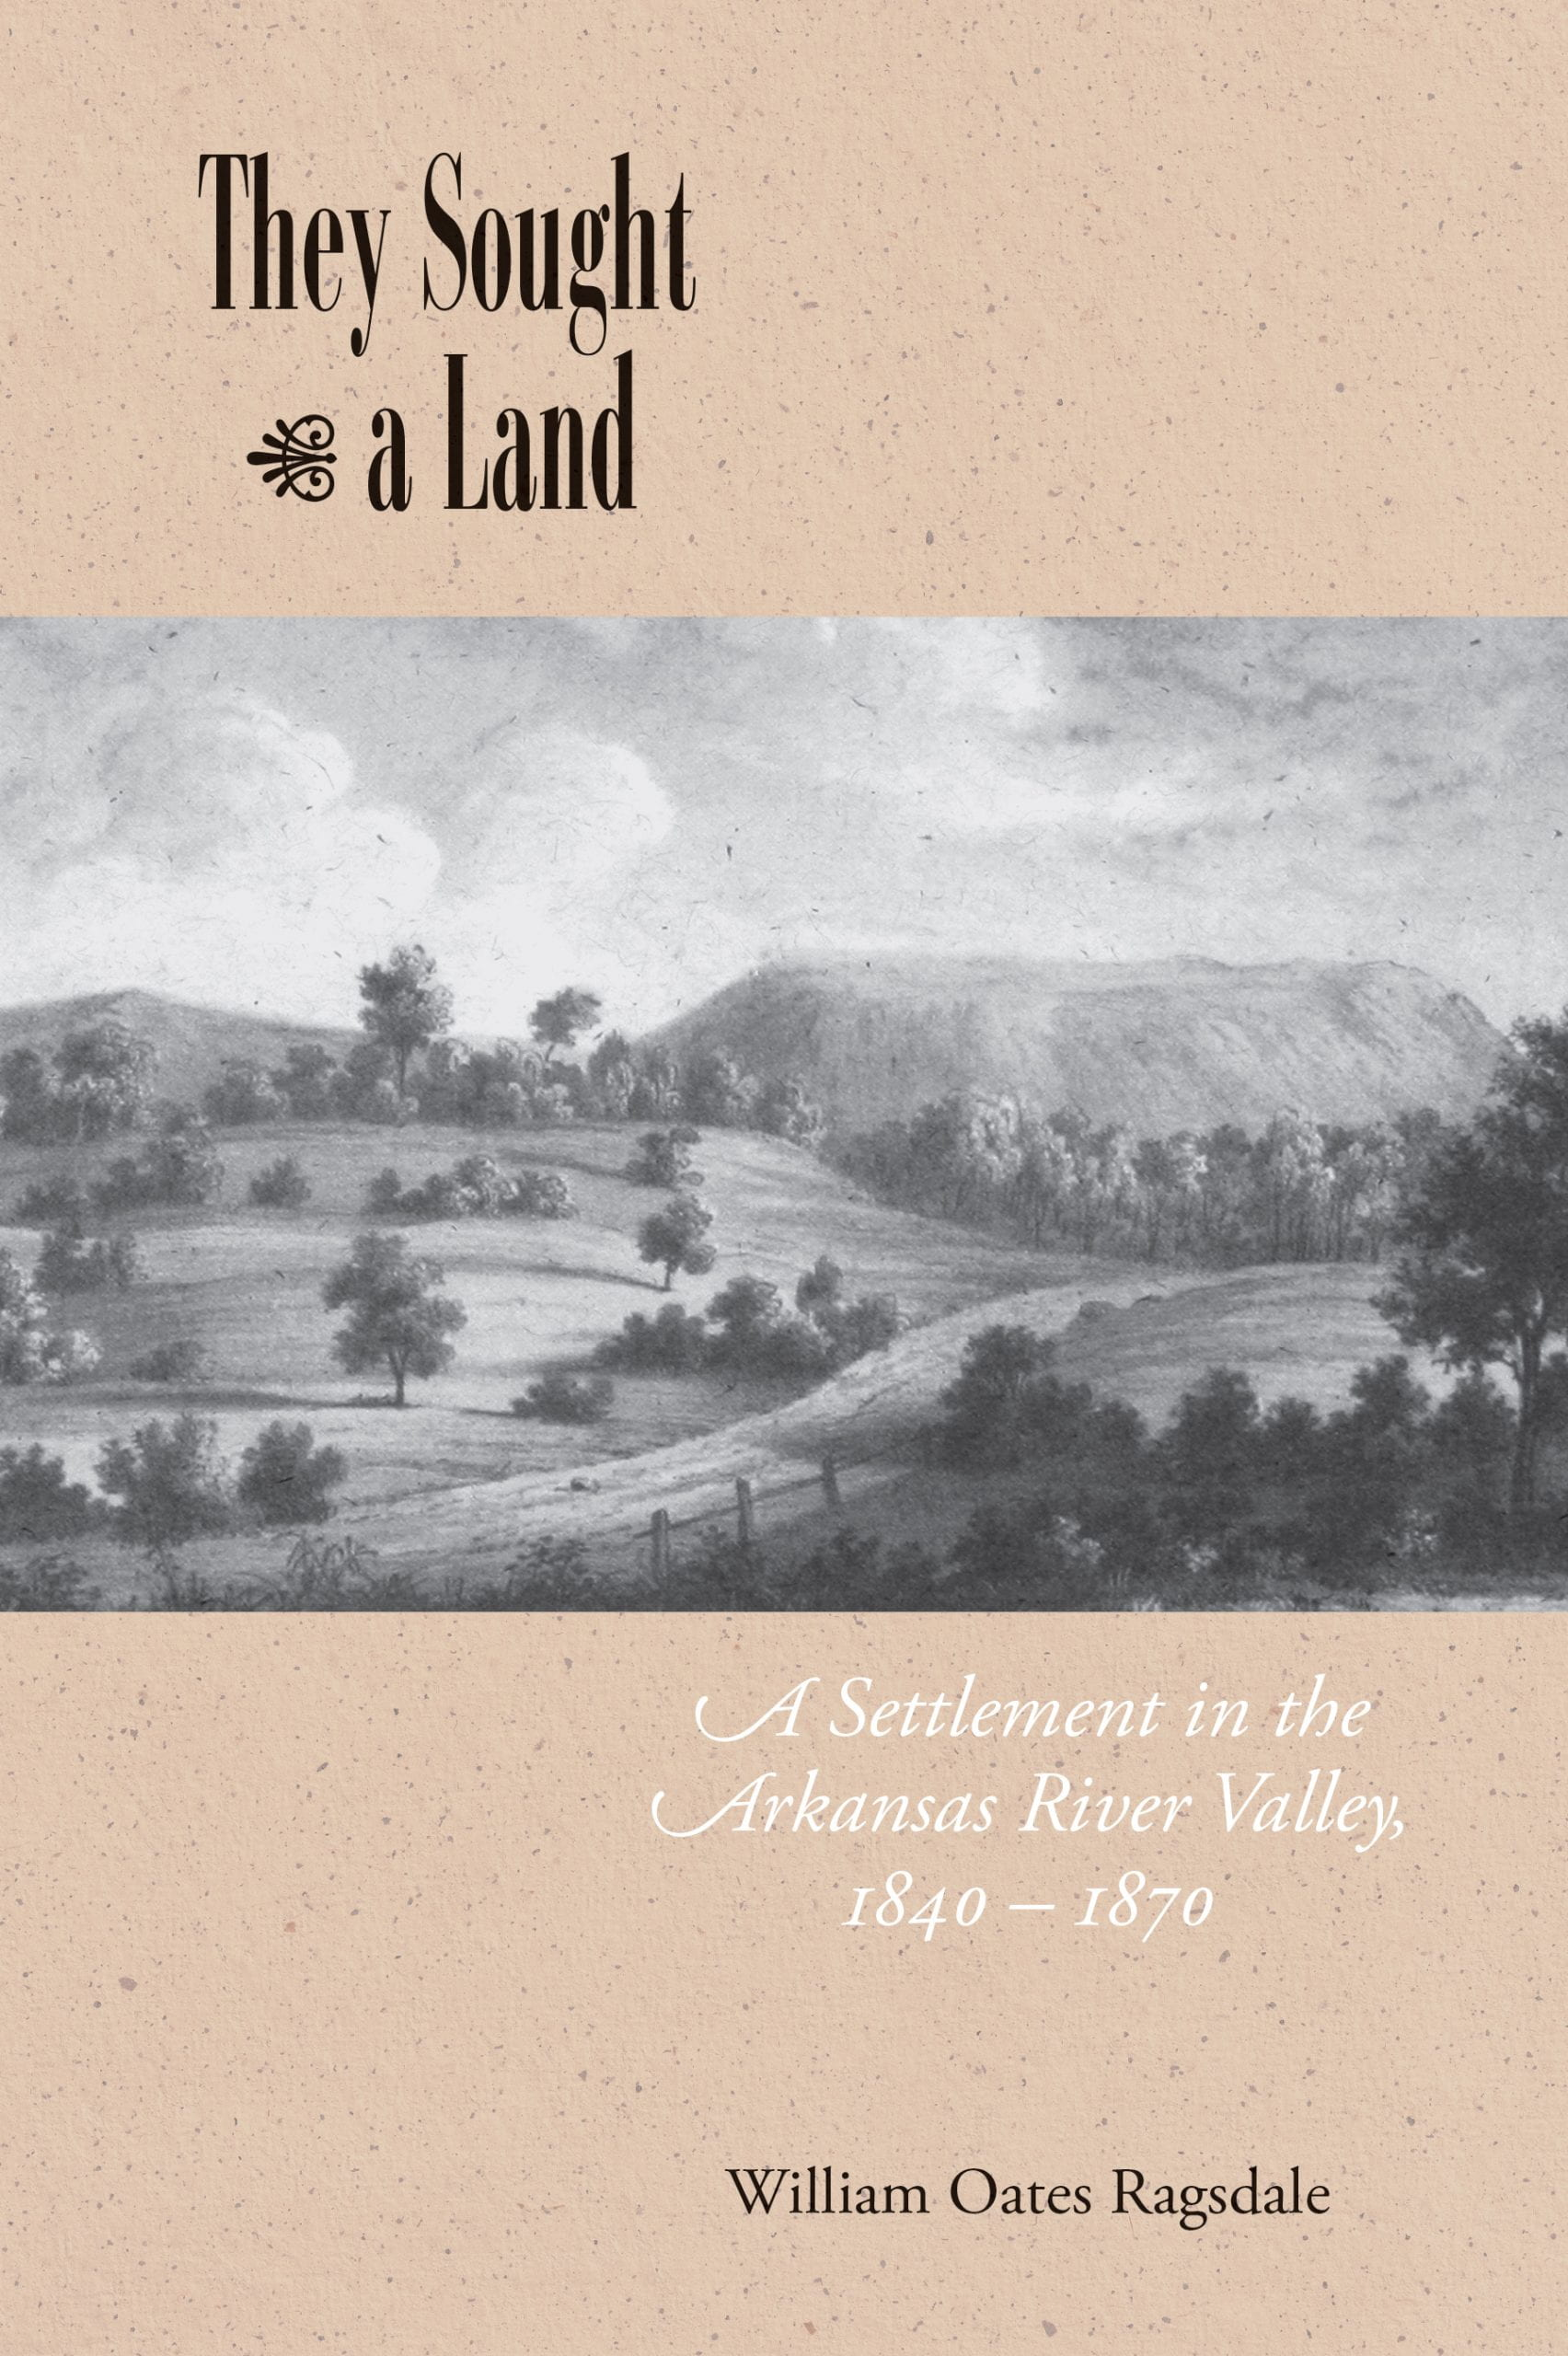 cover for They Sought a Land by William Oats Ragsdale